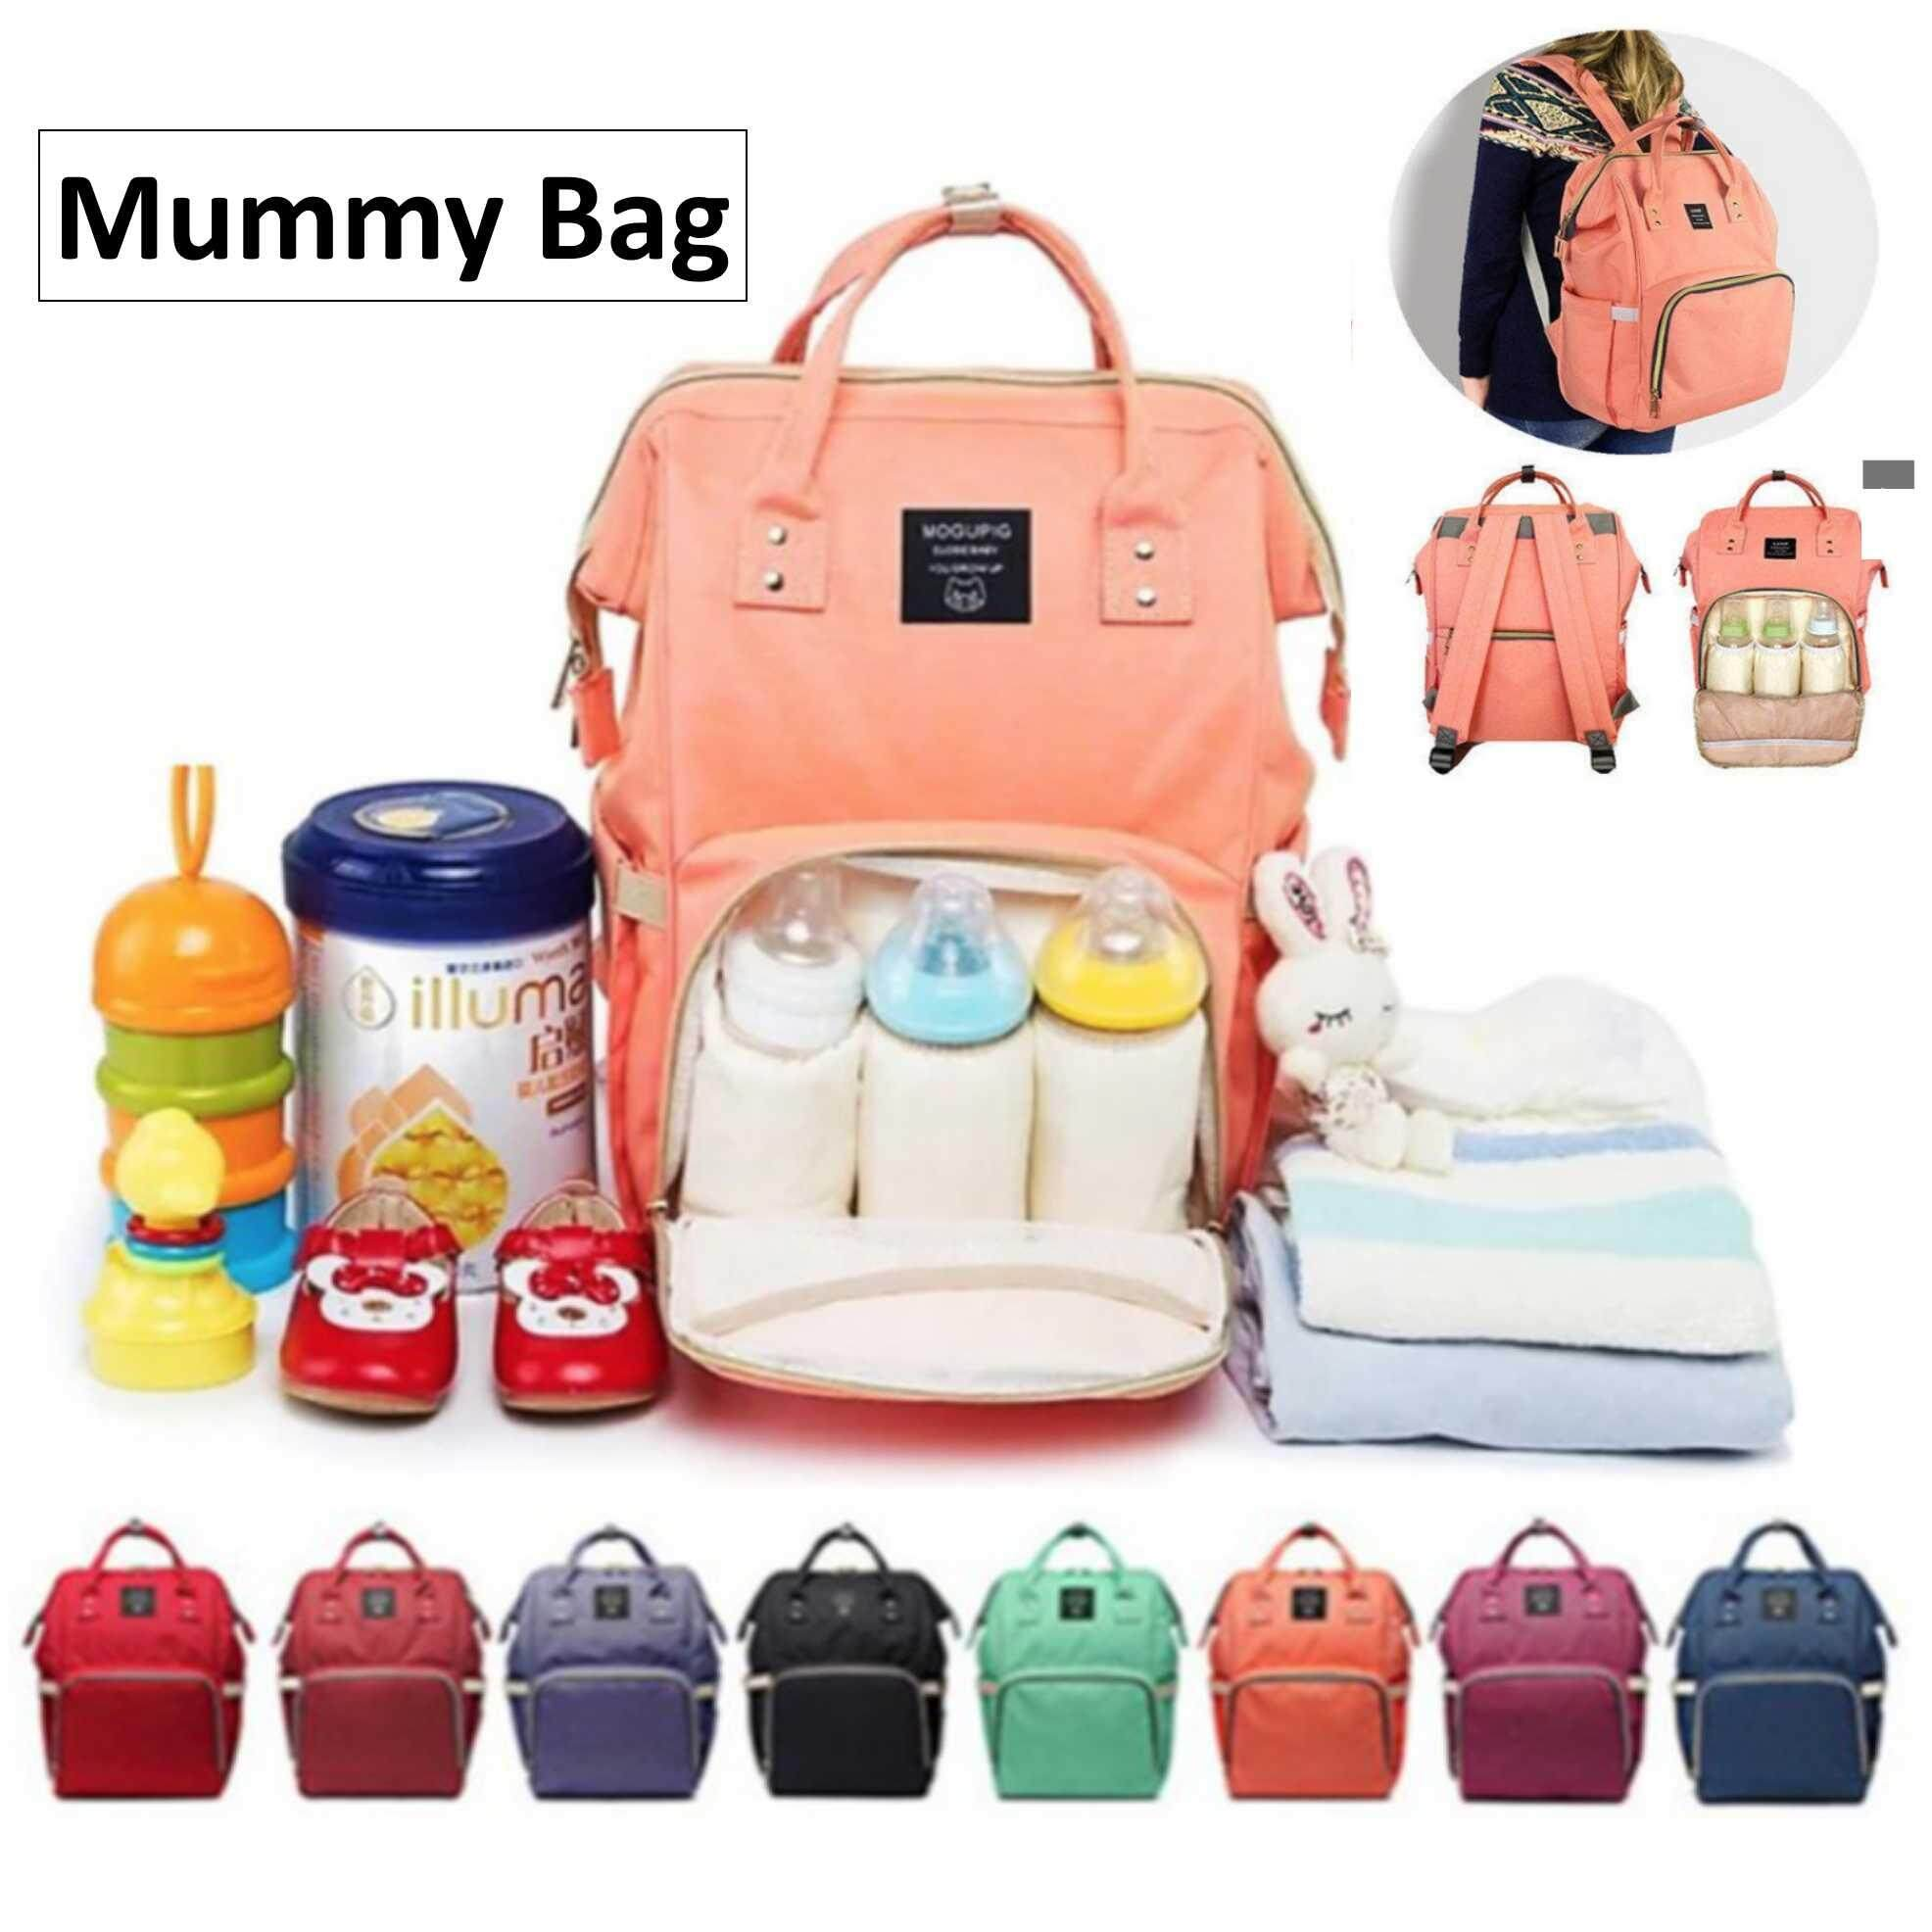 Diaper Bags For The Best Price In Malaysia Babygo Inc Metro Backpack Blue Daddy Bag Mummy Large Capacity Multifunctional